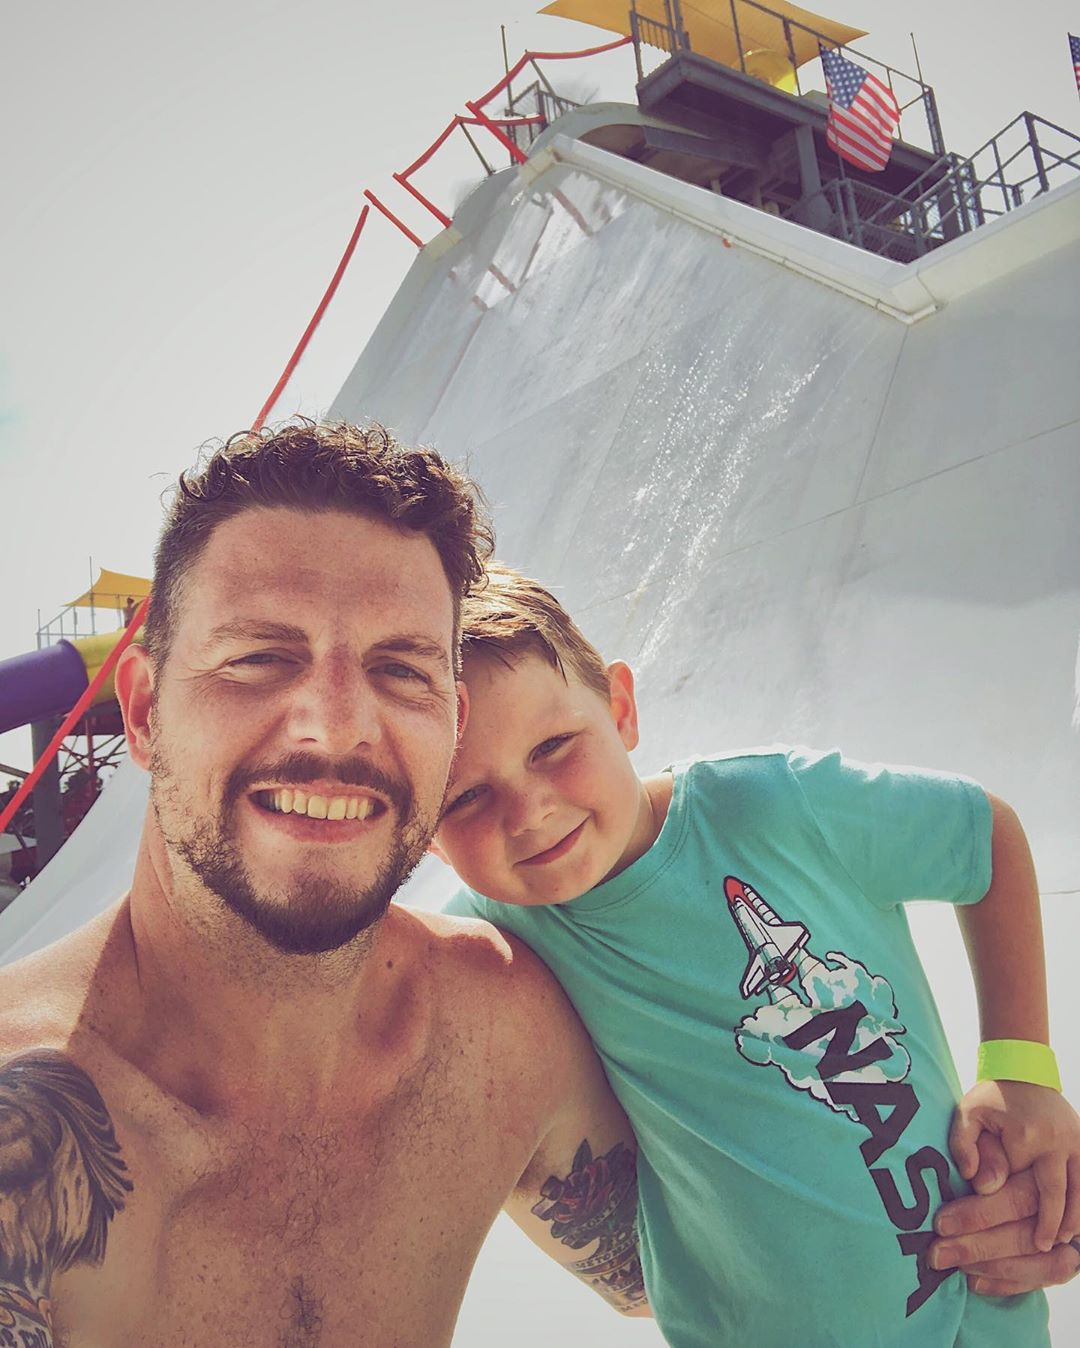 This crazy guy did this crazy slide with me a couple times today. And we did another slide 10 times in a row. It's tough work, but someone's gotta do it.